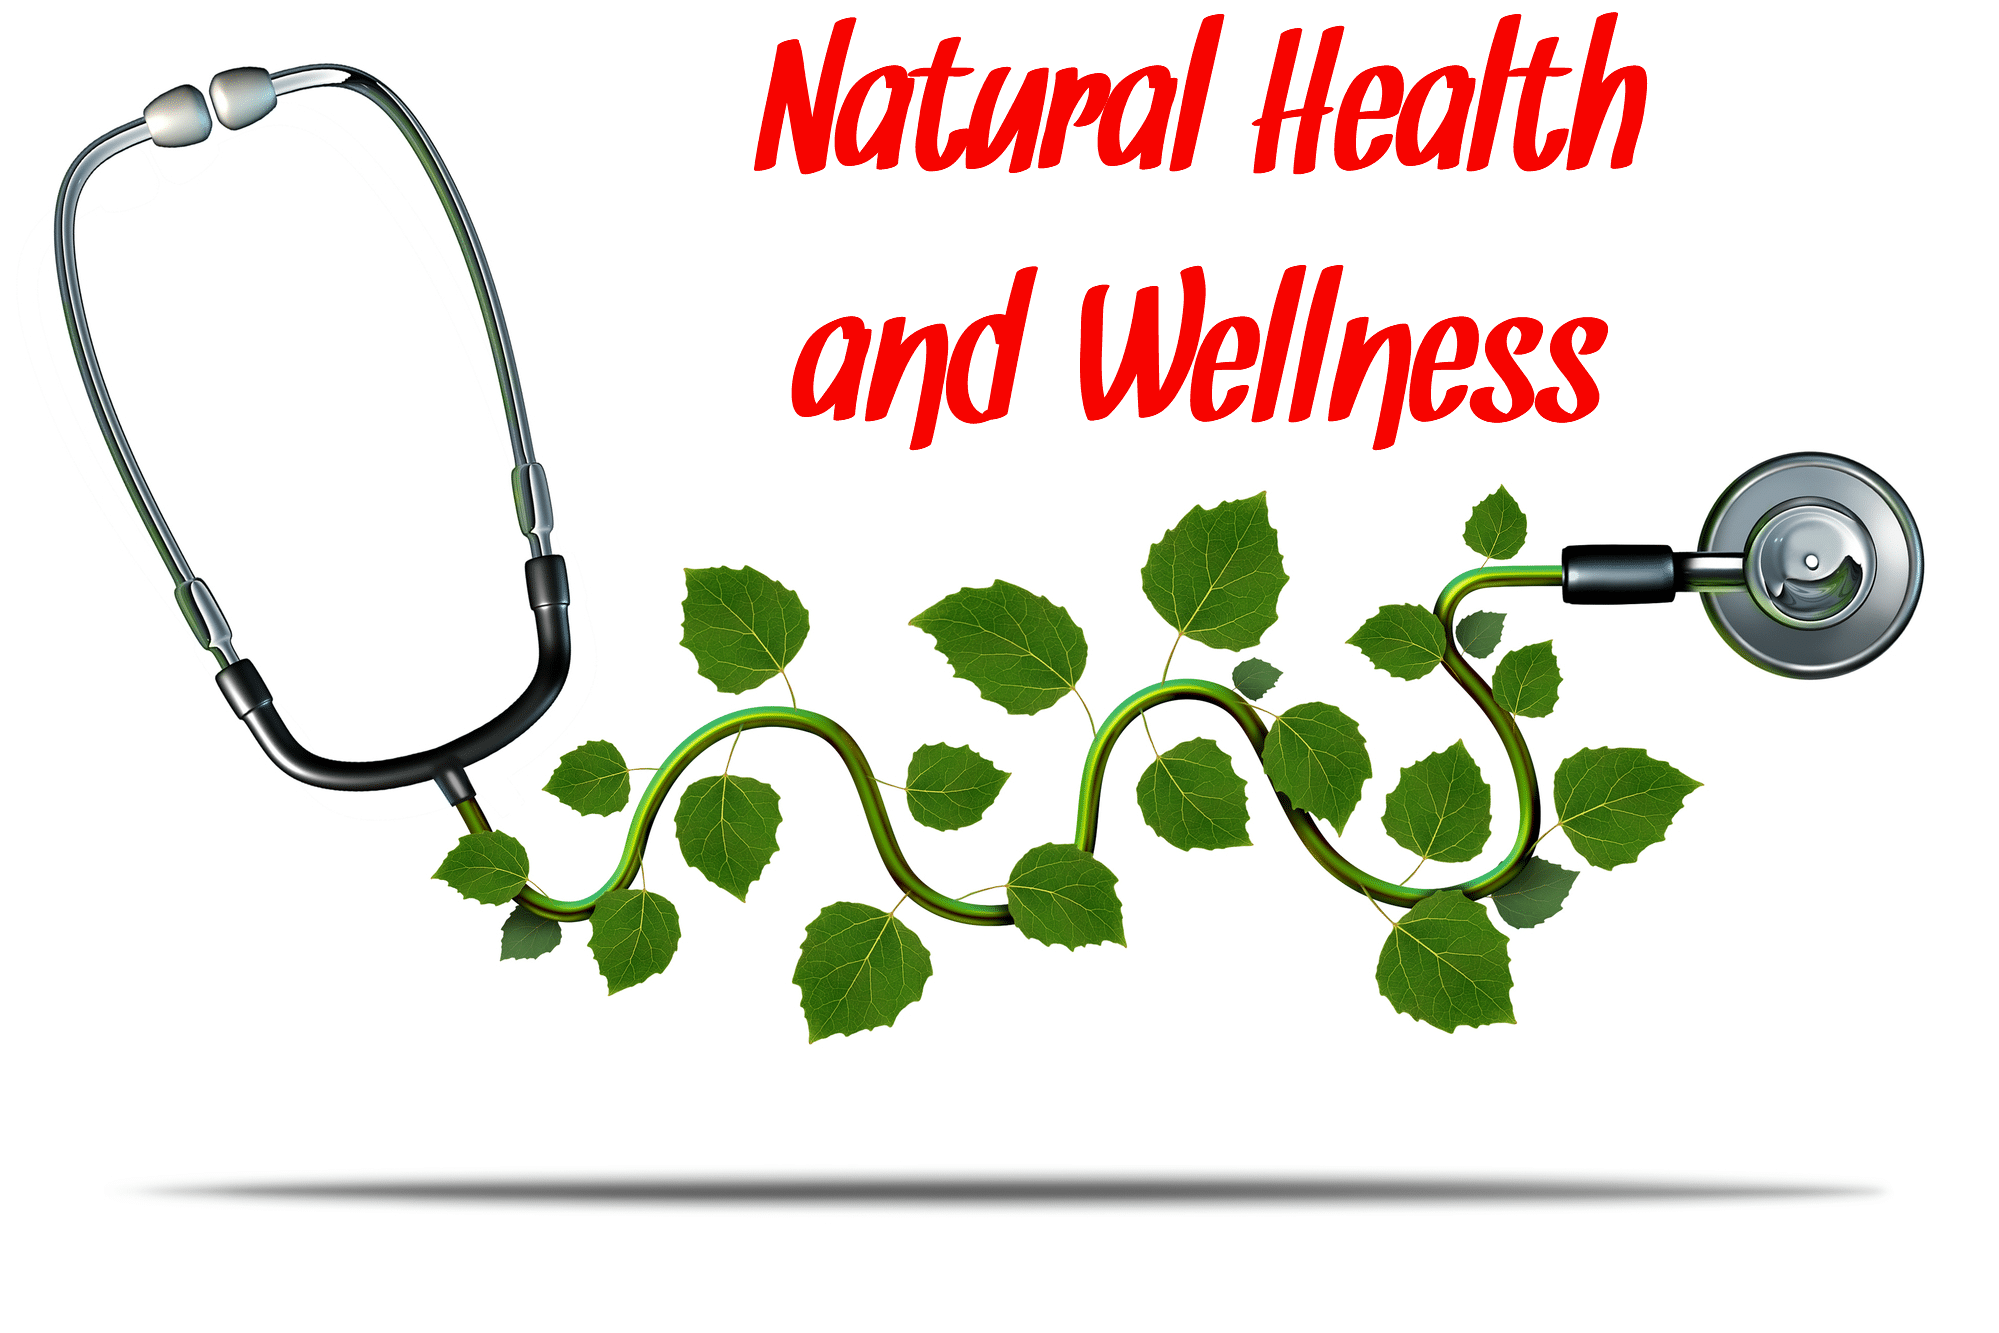 Natural health and wellness icon of a stethescope with herb leaves